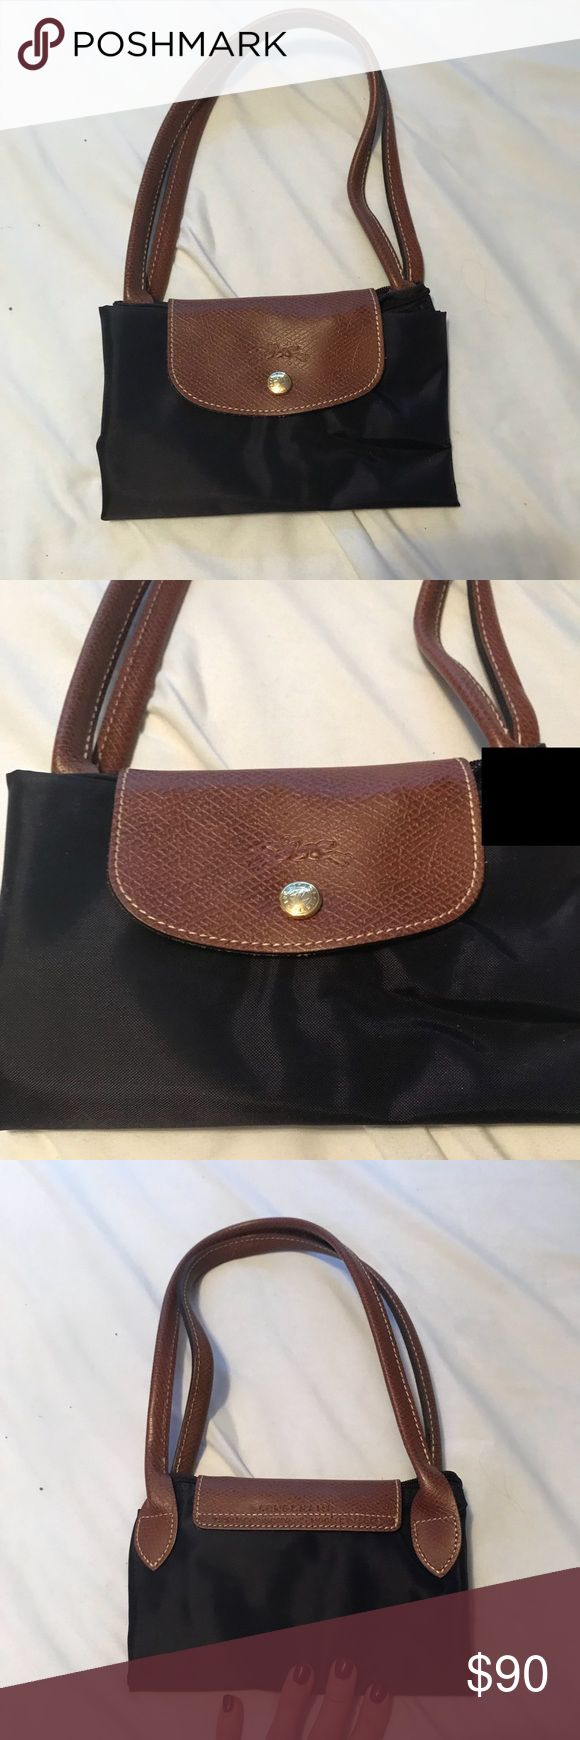 Longchamp medium tote with long straps aubergine Longchamp medium tote with long straps aubergine - excellent condition.  Used maybe once. Longchamp Bags Totes